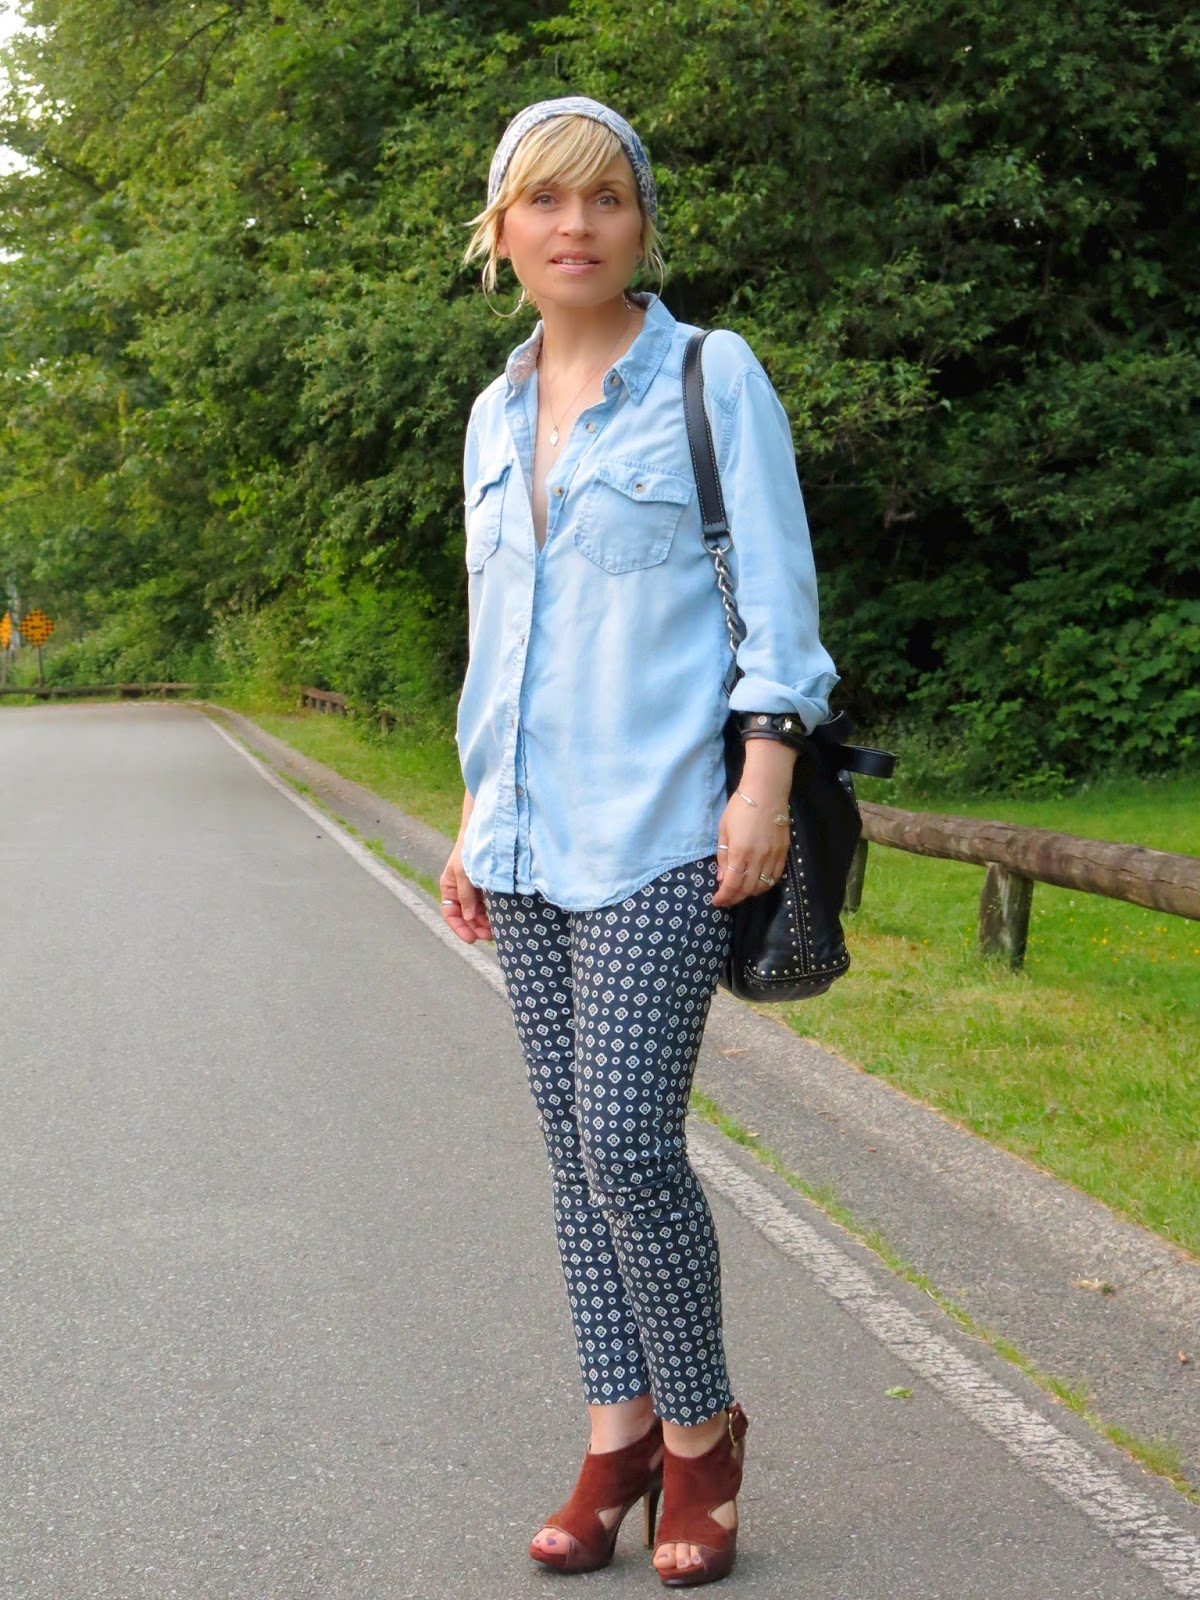 styling printed pants with a chambray shirt and patterned beanie